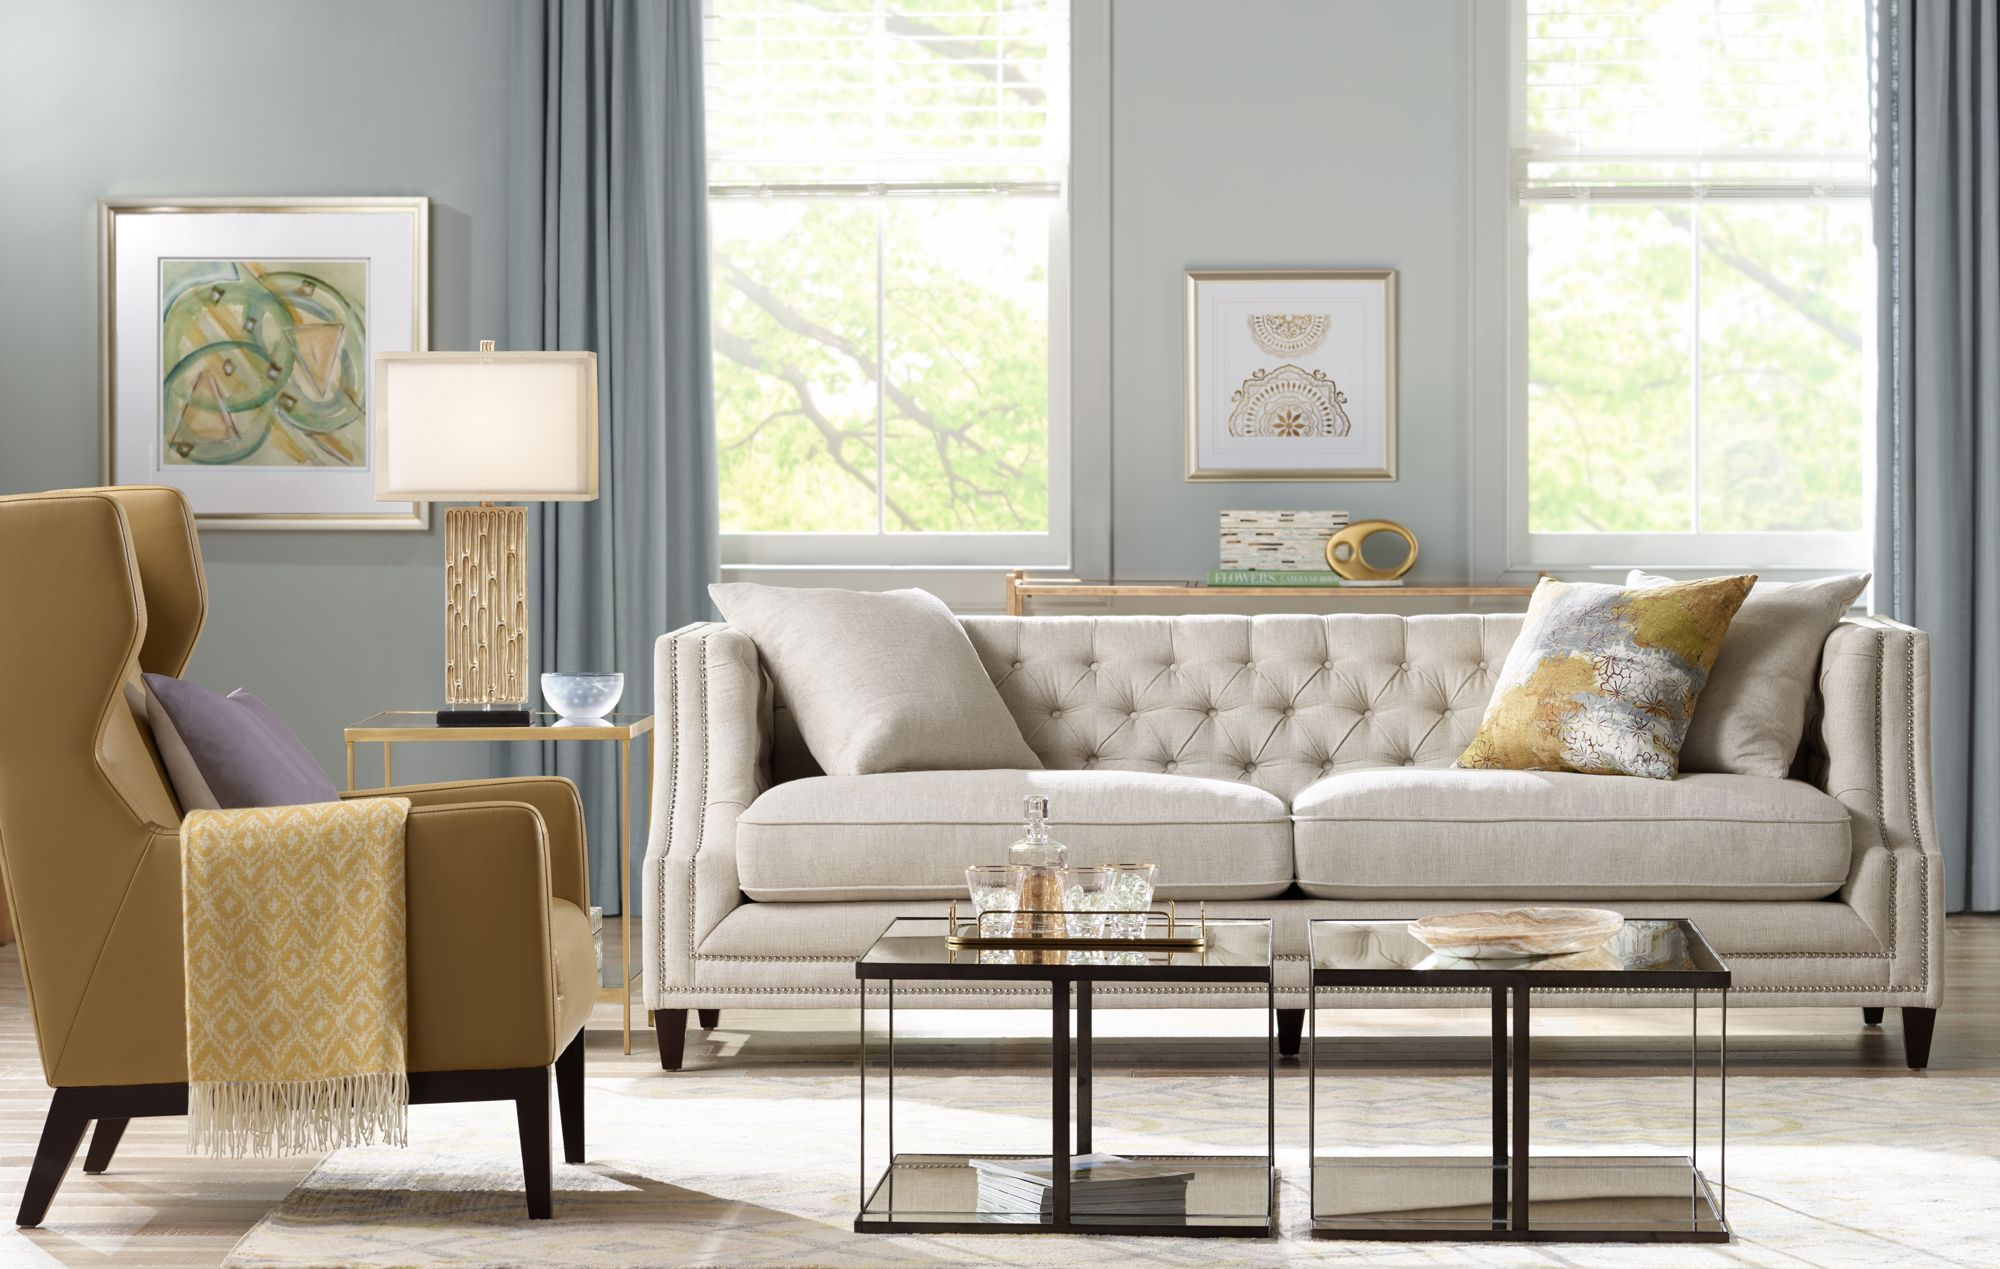 A Chateau Sofa In Linen Anchors This Casual Stylish Living Room.